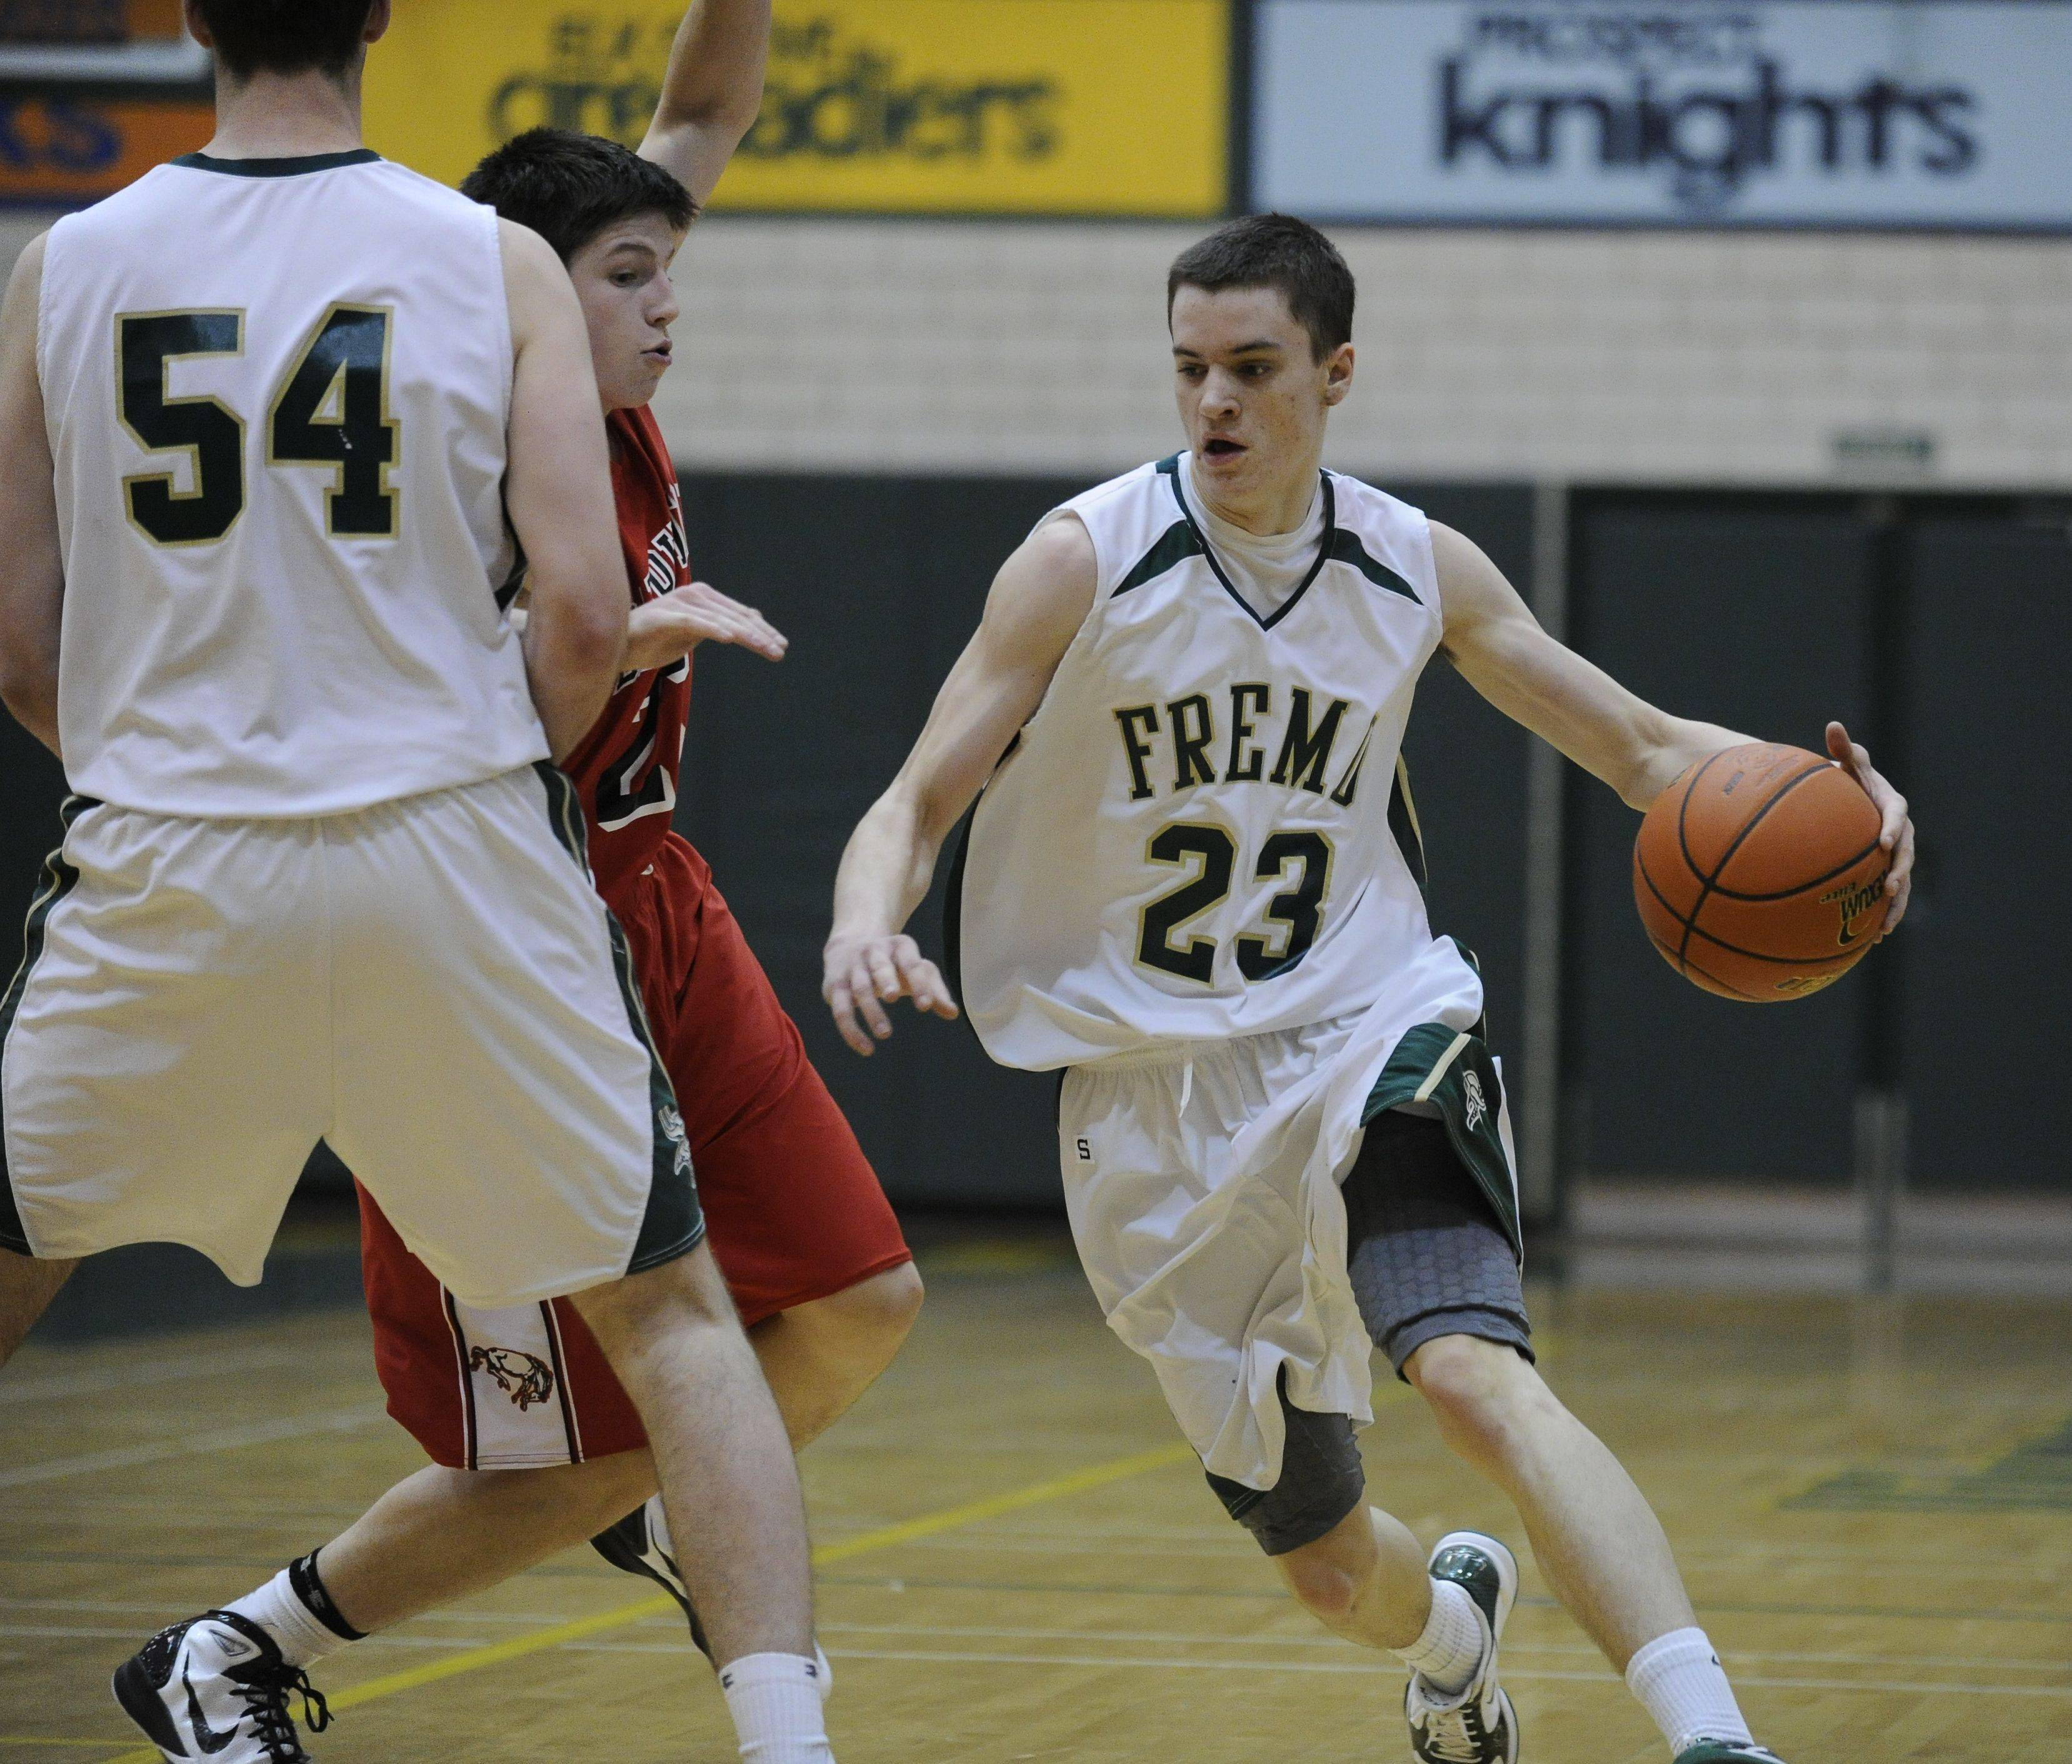 Zach Monaghan and Fremd look to atone for last year's early postseason exit.